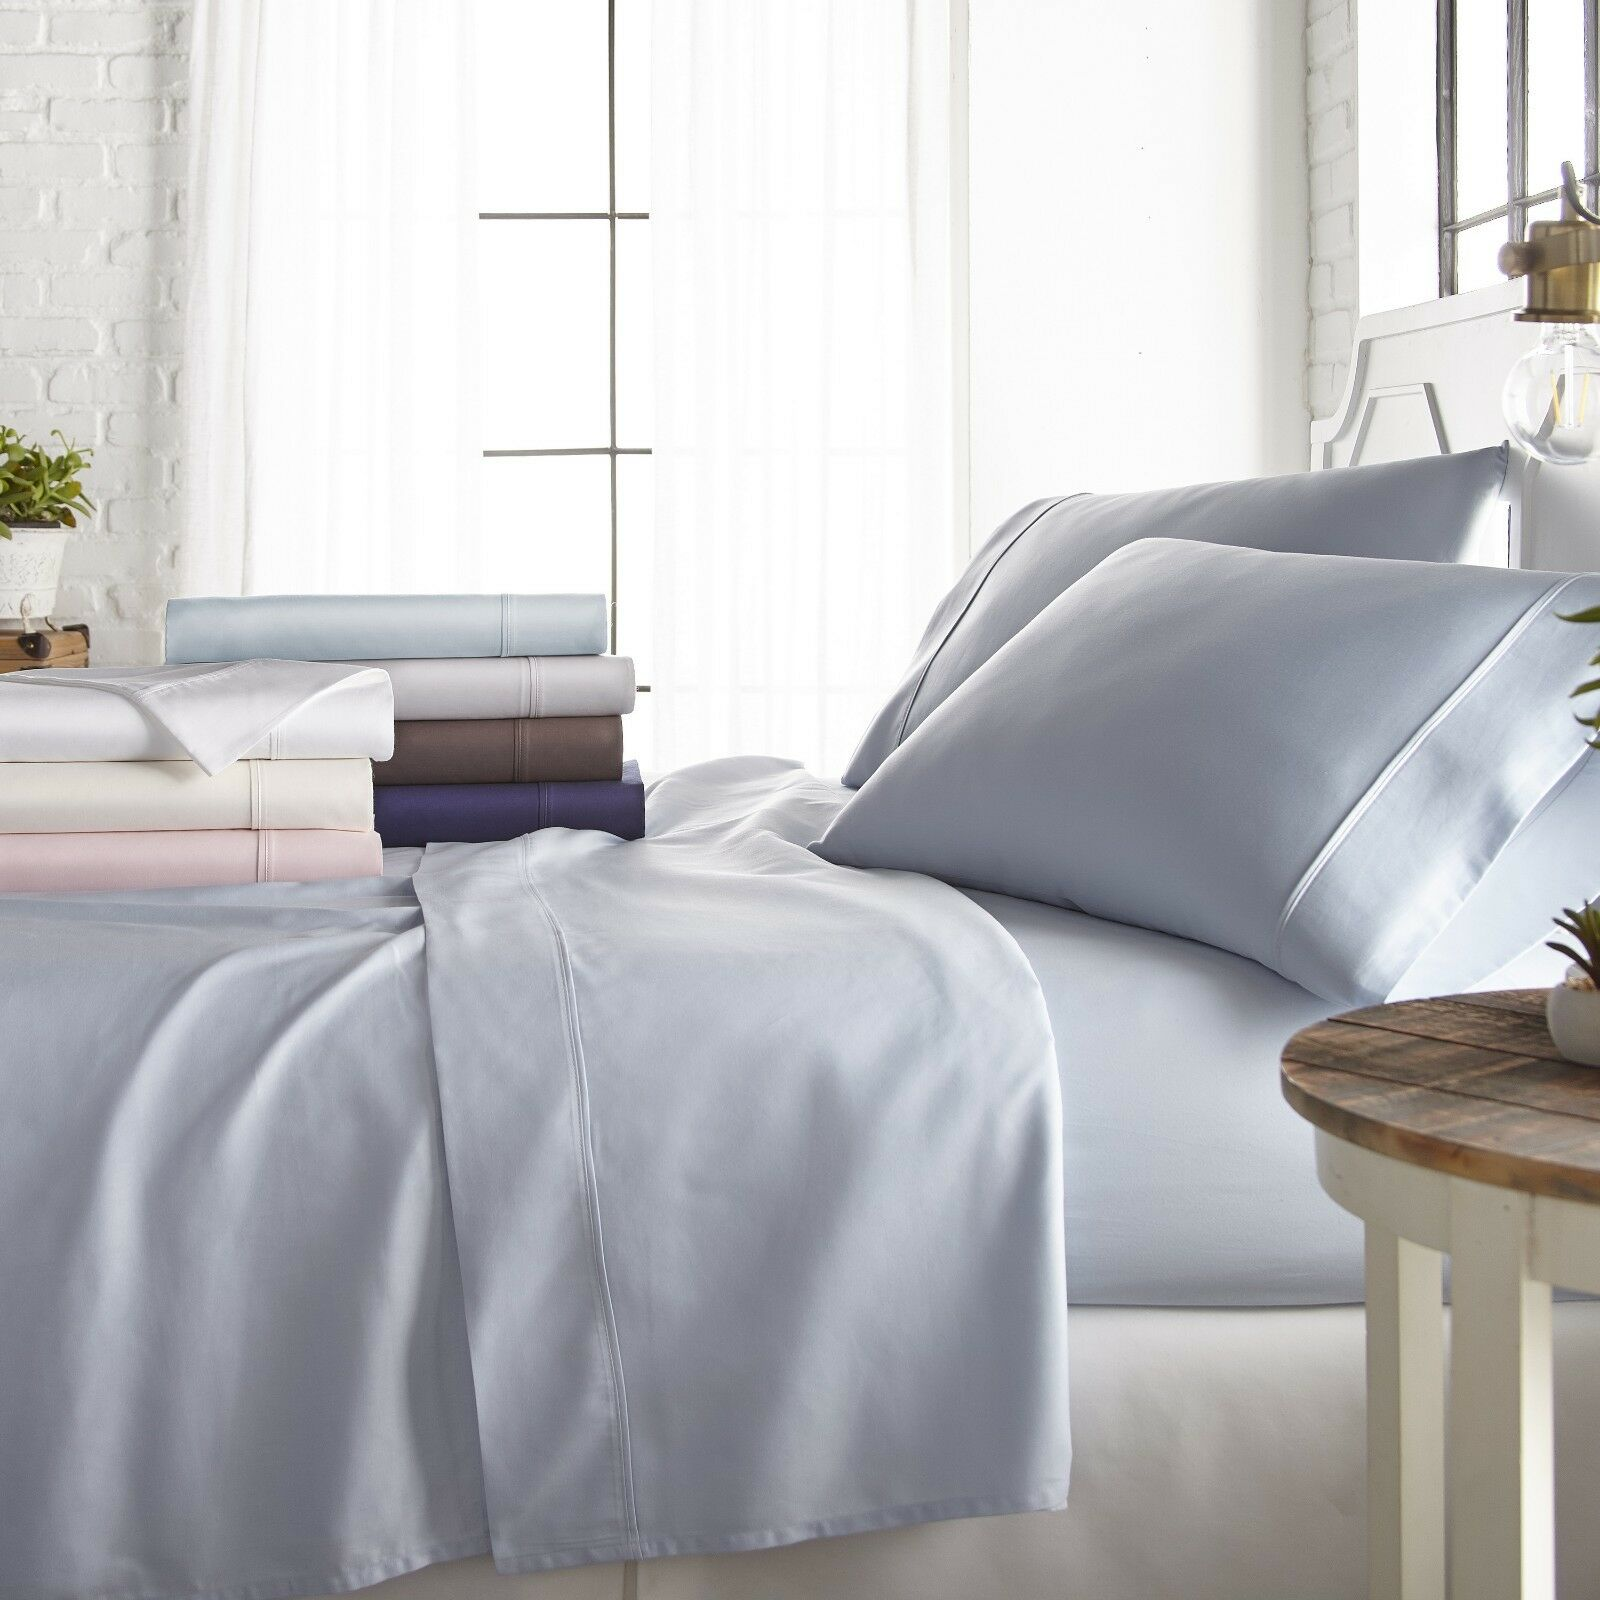 Home Collection Ultra Soft 800 Thread Count 4 Piece Cotton Rich Sheet Set